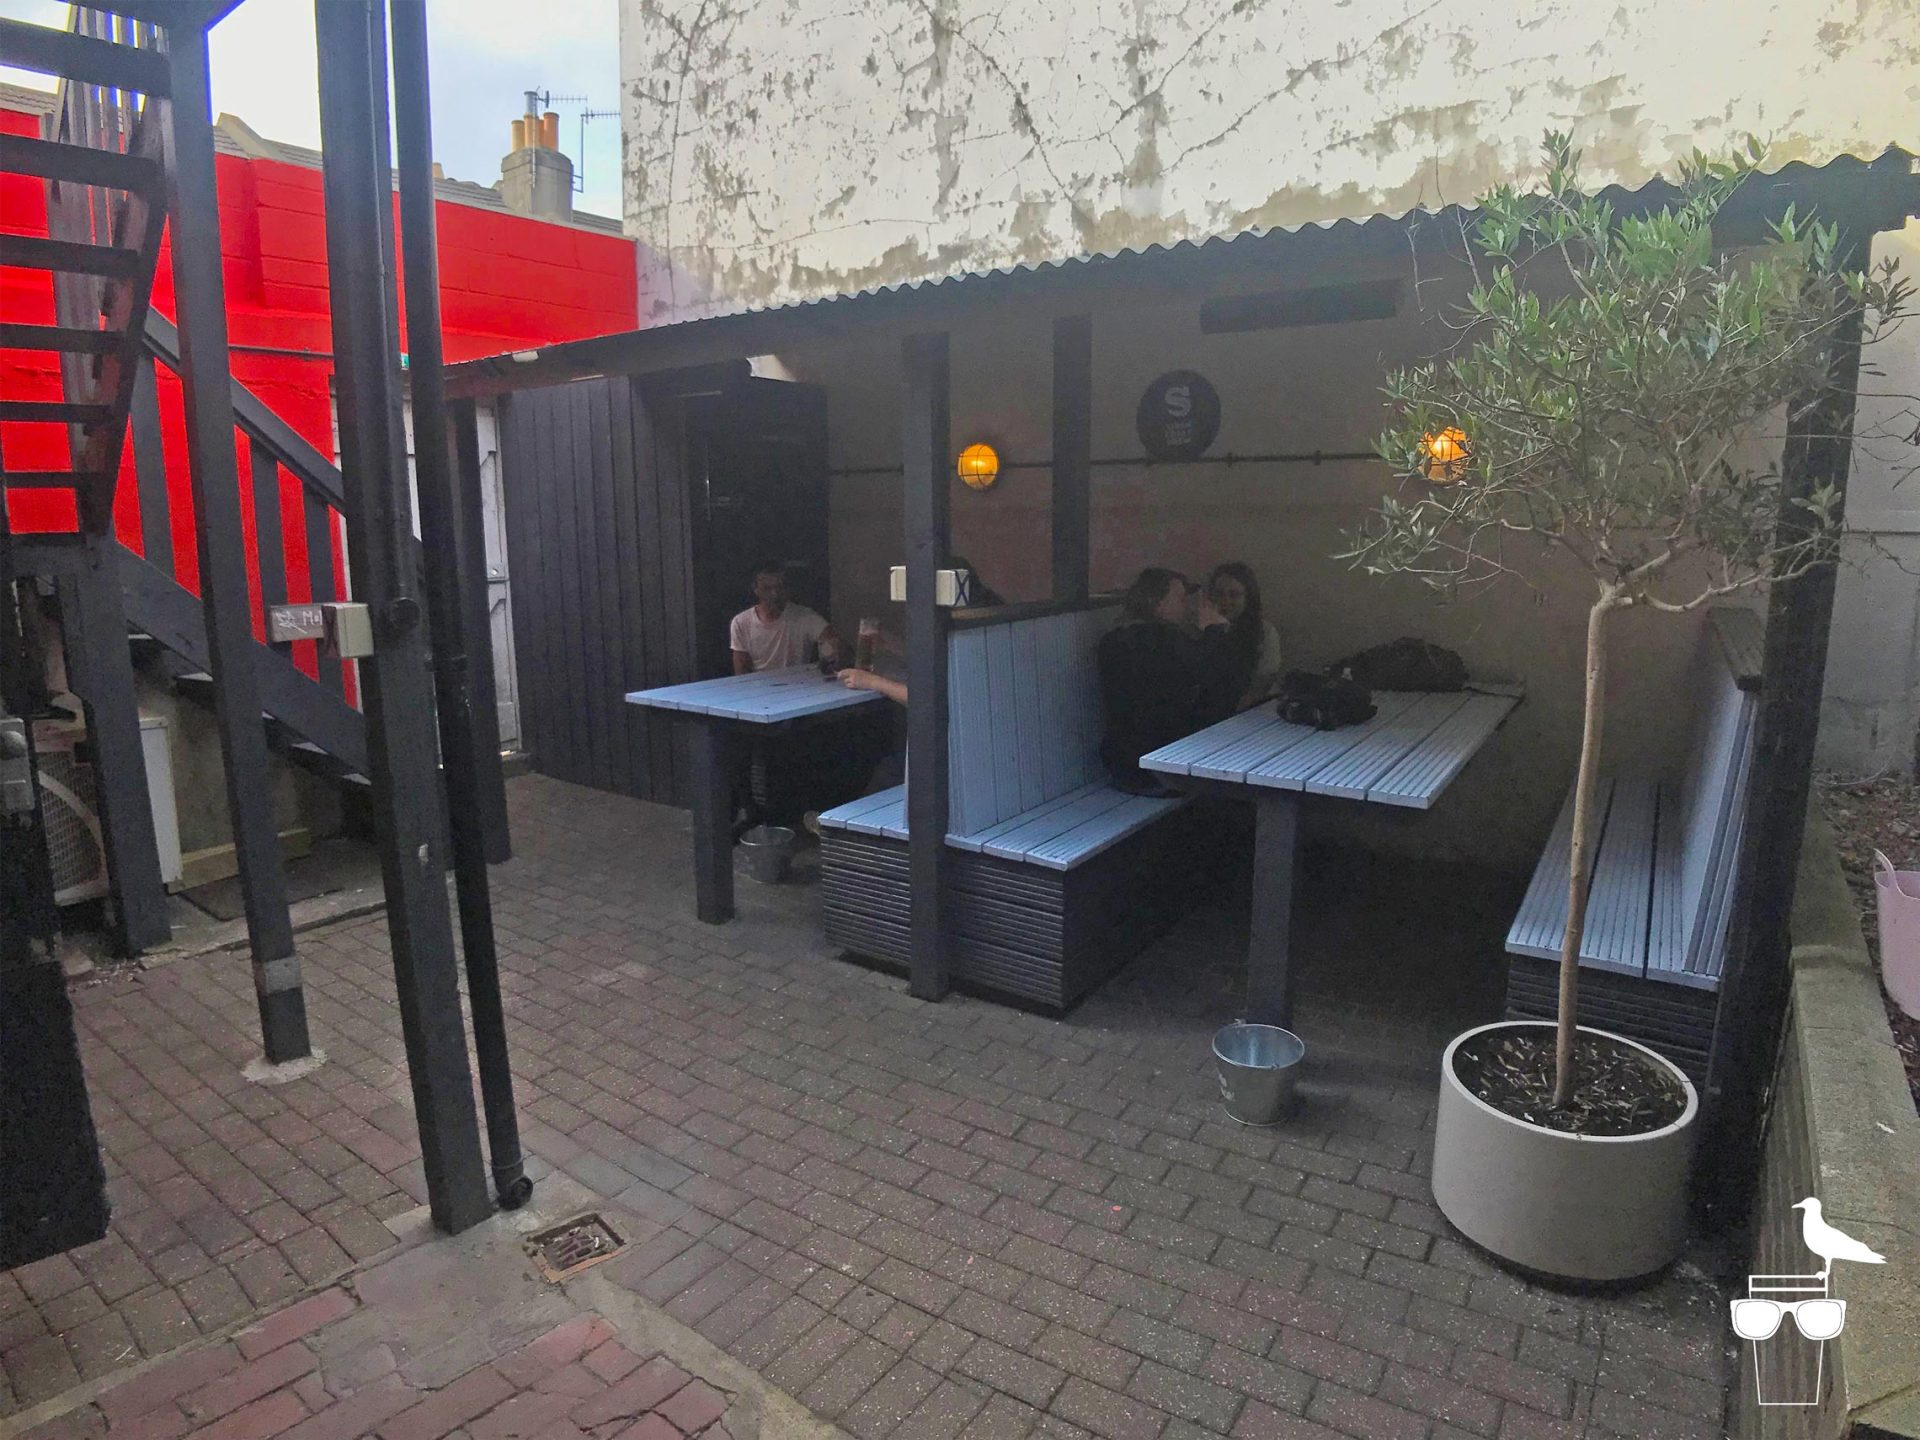 haus on the hill brighton pub hanover outside booth seating